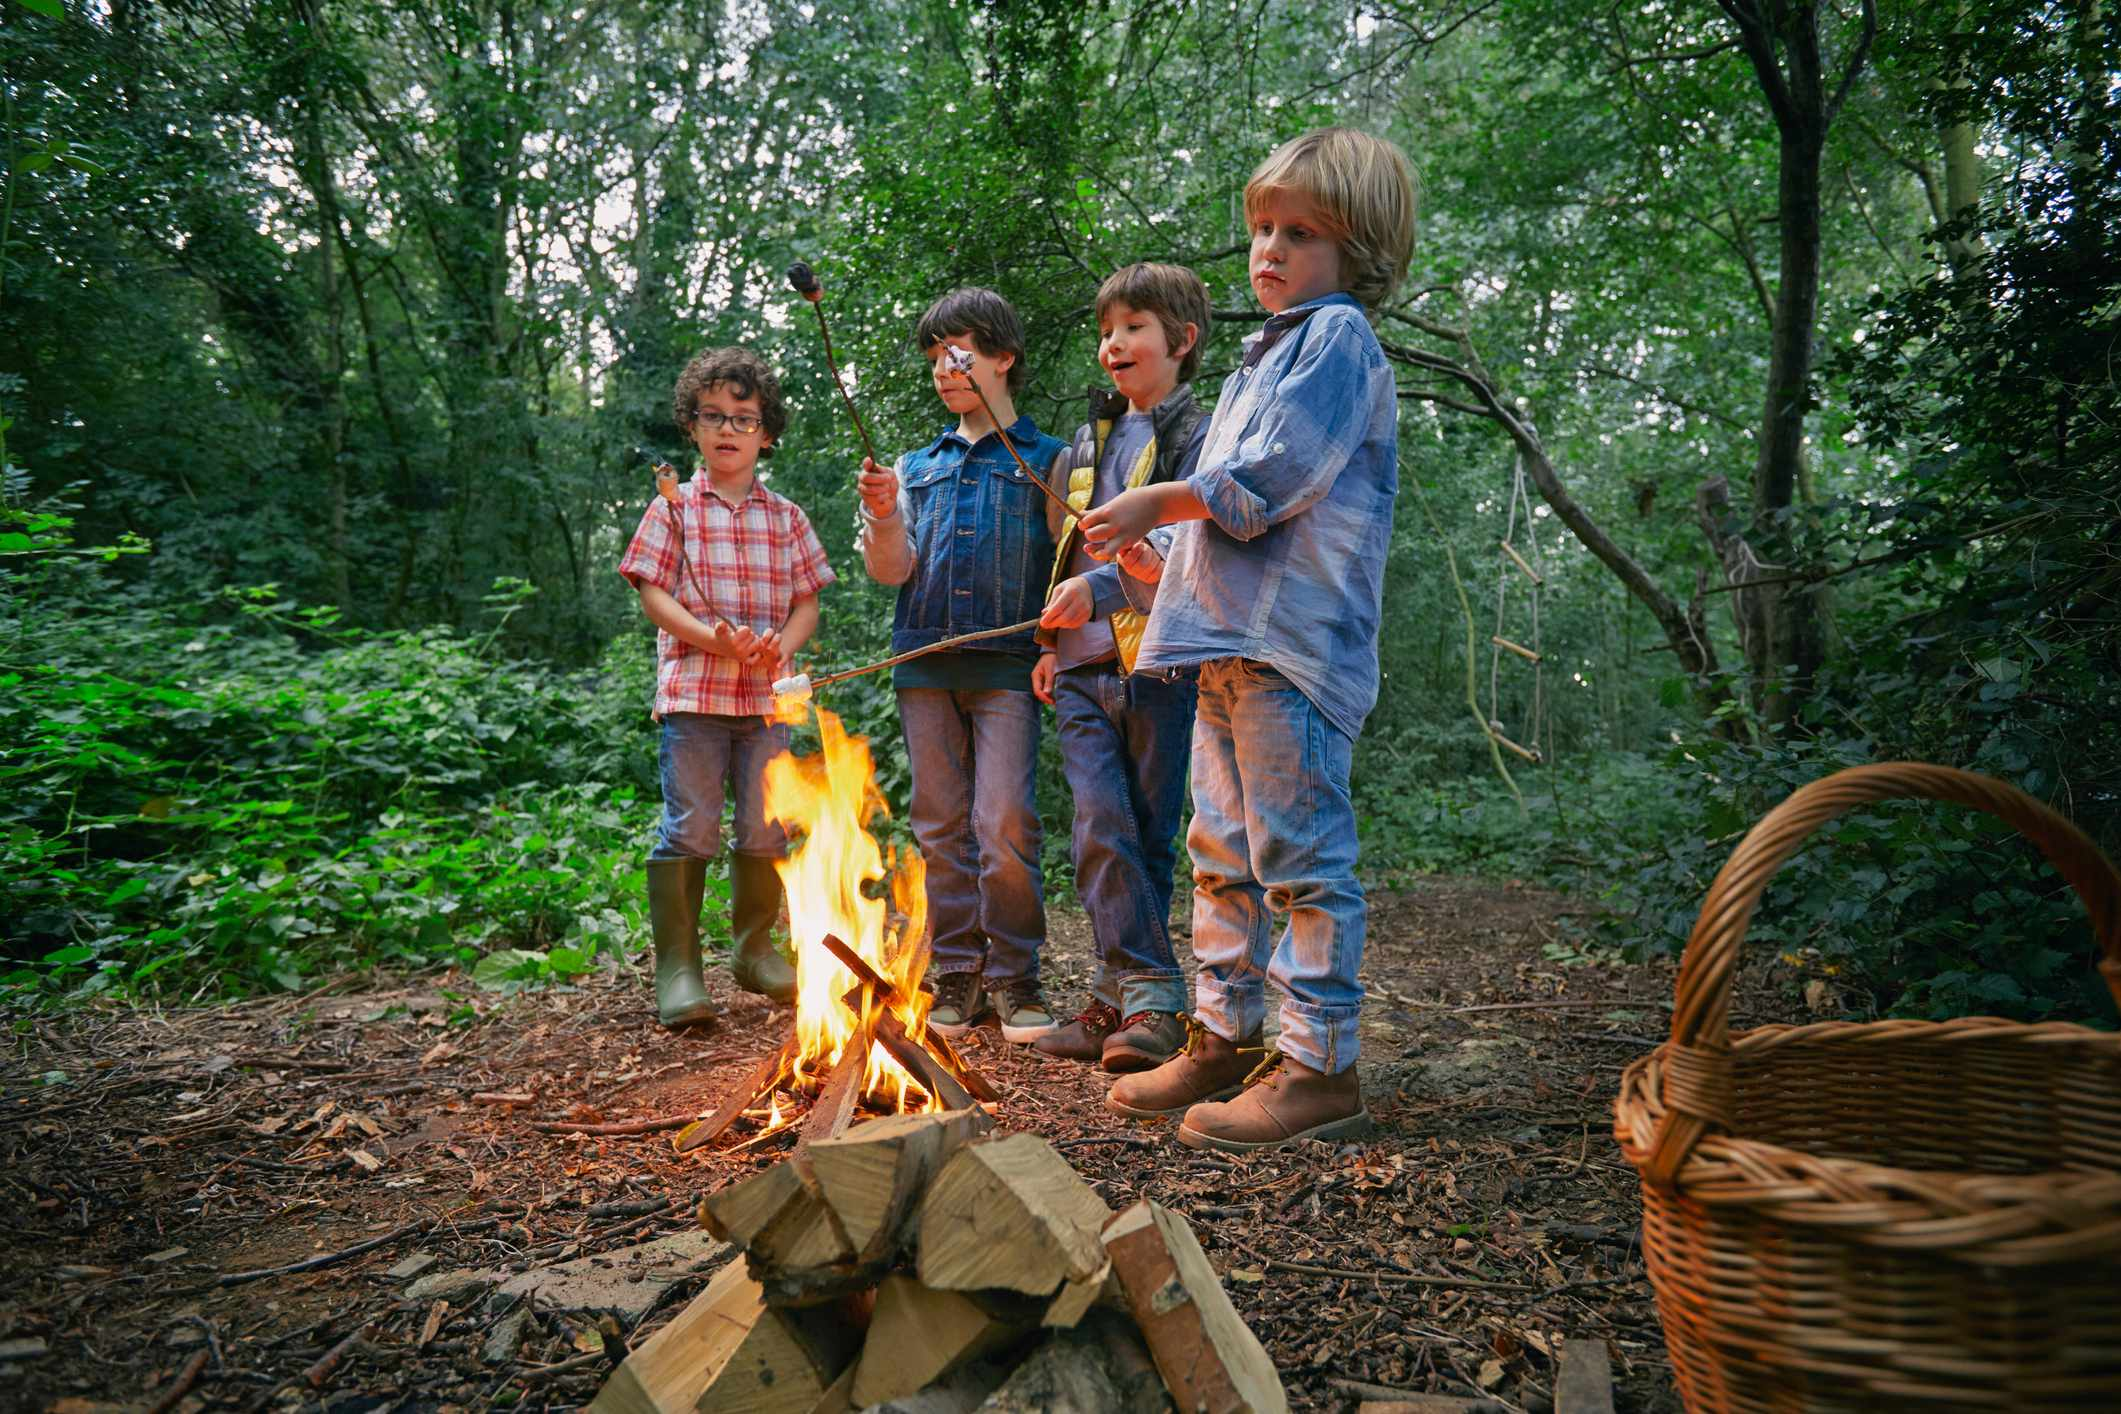 Four boys toasting marshmallows on campfire in forest